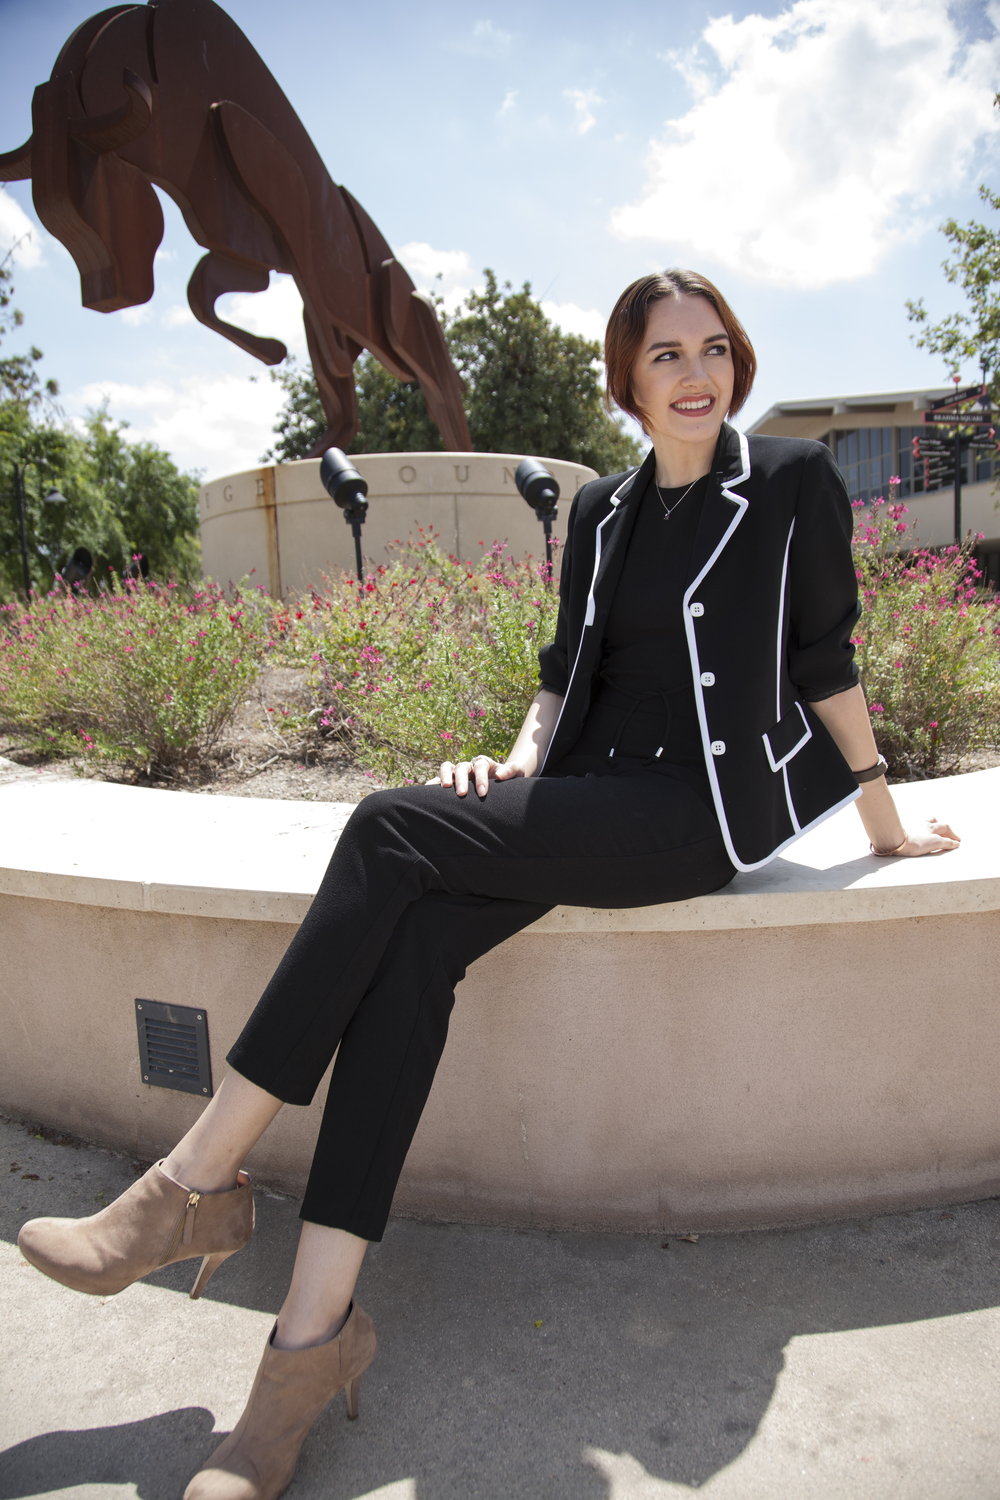 Jamie Daugherty, a 21-year-old communications major, has appeared on shows such as Girls Rock, Luscious Waves, Coco Rocha, and FAB Life. Daugherty sits in front of the Bull sculpture on The Mall of Pierce College on Wednesday, April 20, 2016 in Woodland Hills, Calif.